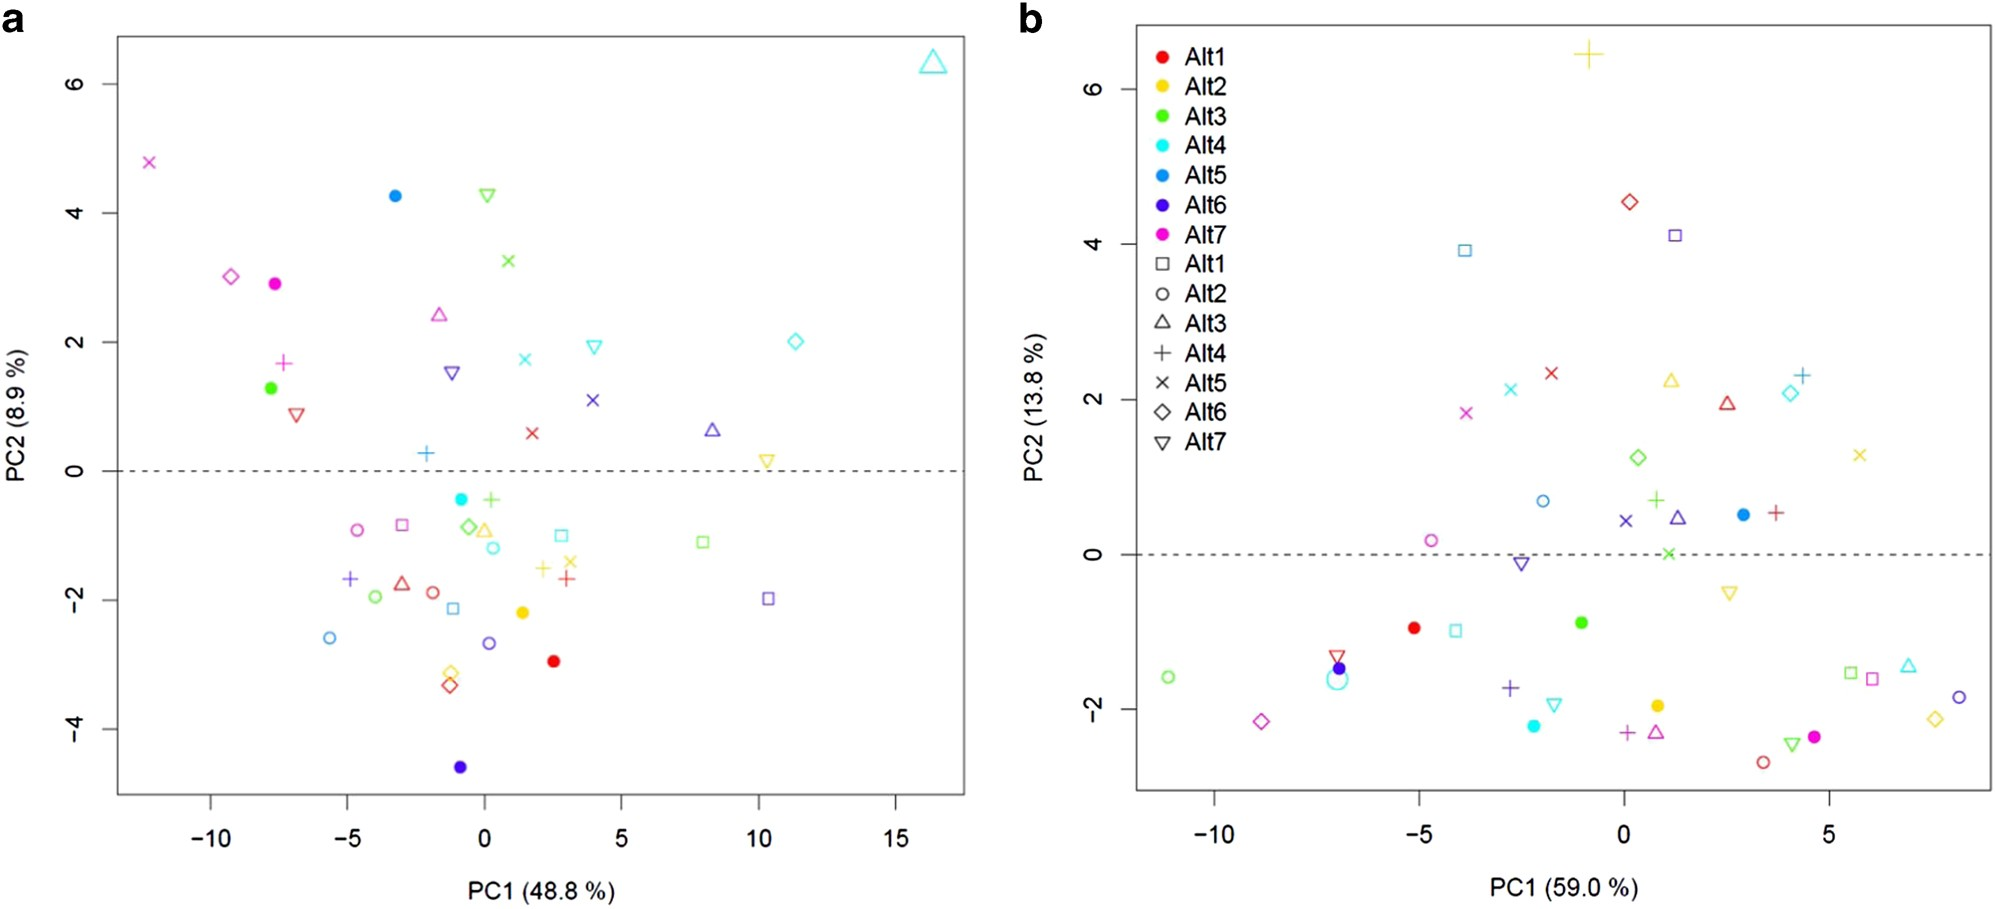 Inheritance patterns in metabolism and growth in diallel